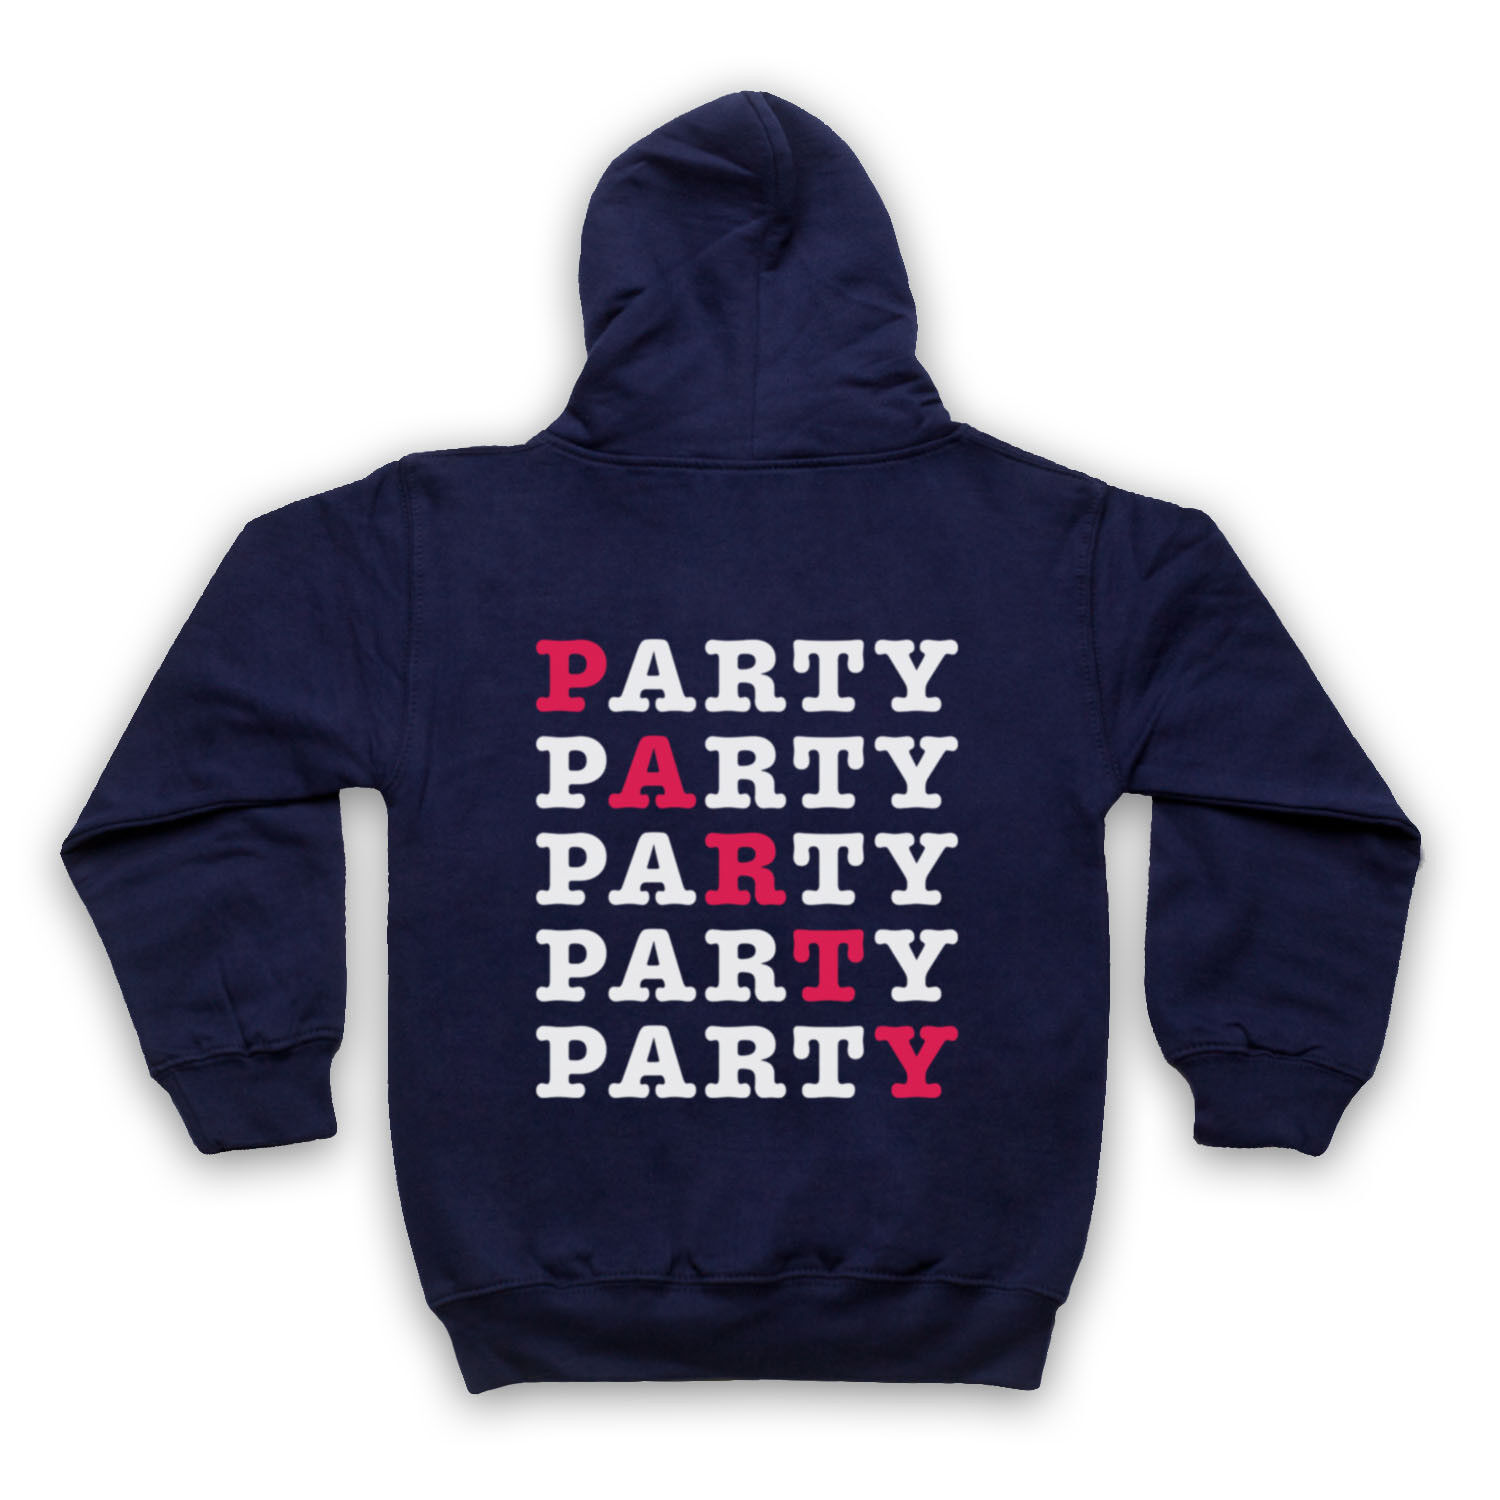 PARTY HIPSTER RETRO SLOGAN COOL DRINKING ADULTS ADULTS ADULTS KIDS HOODIE 74b4db